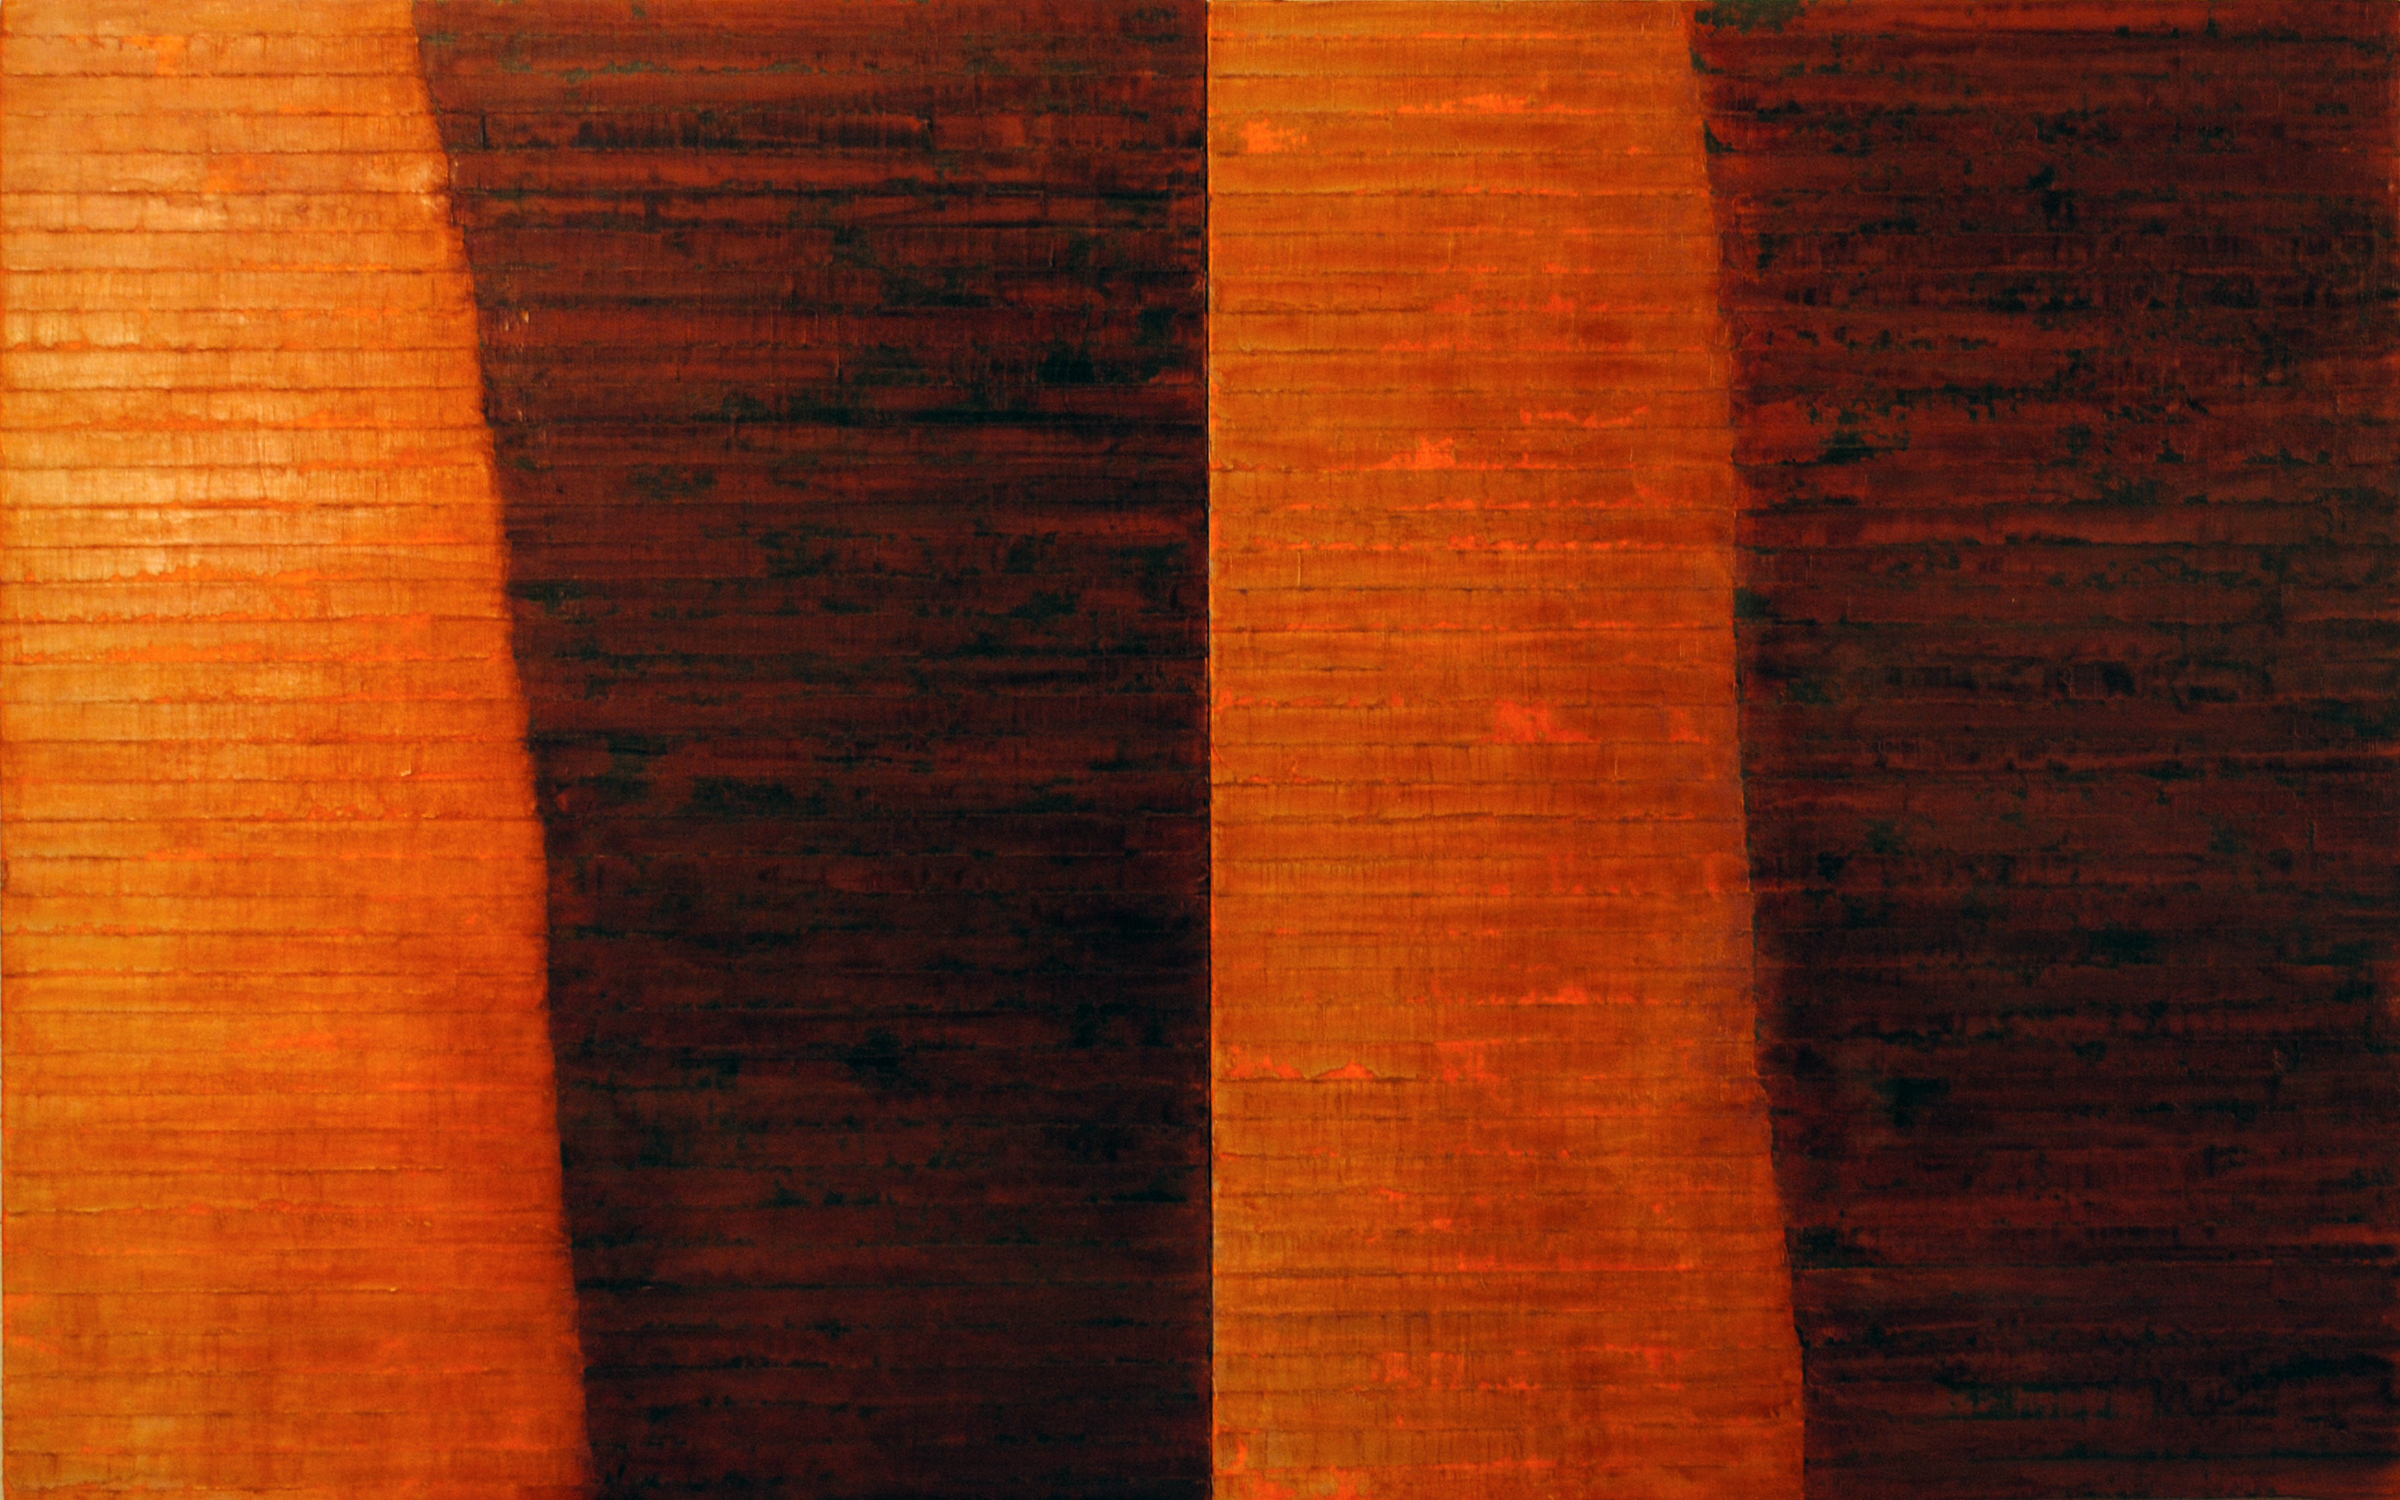 Linea Terminale: 4.10, 2010, Oil on linen over panels, 20 x 36 inches.